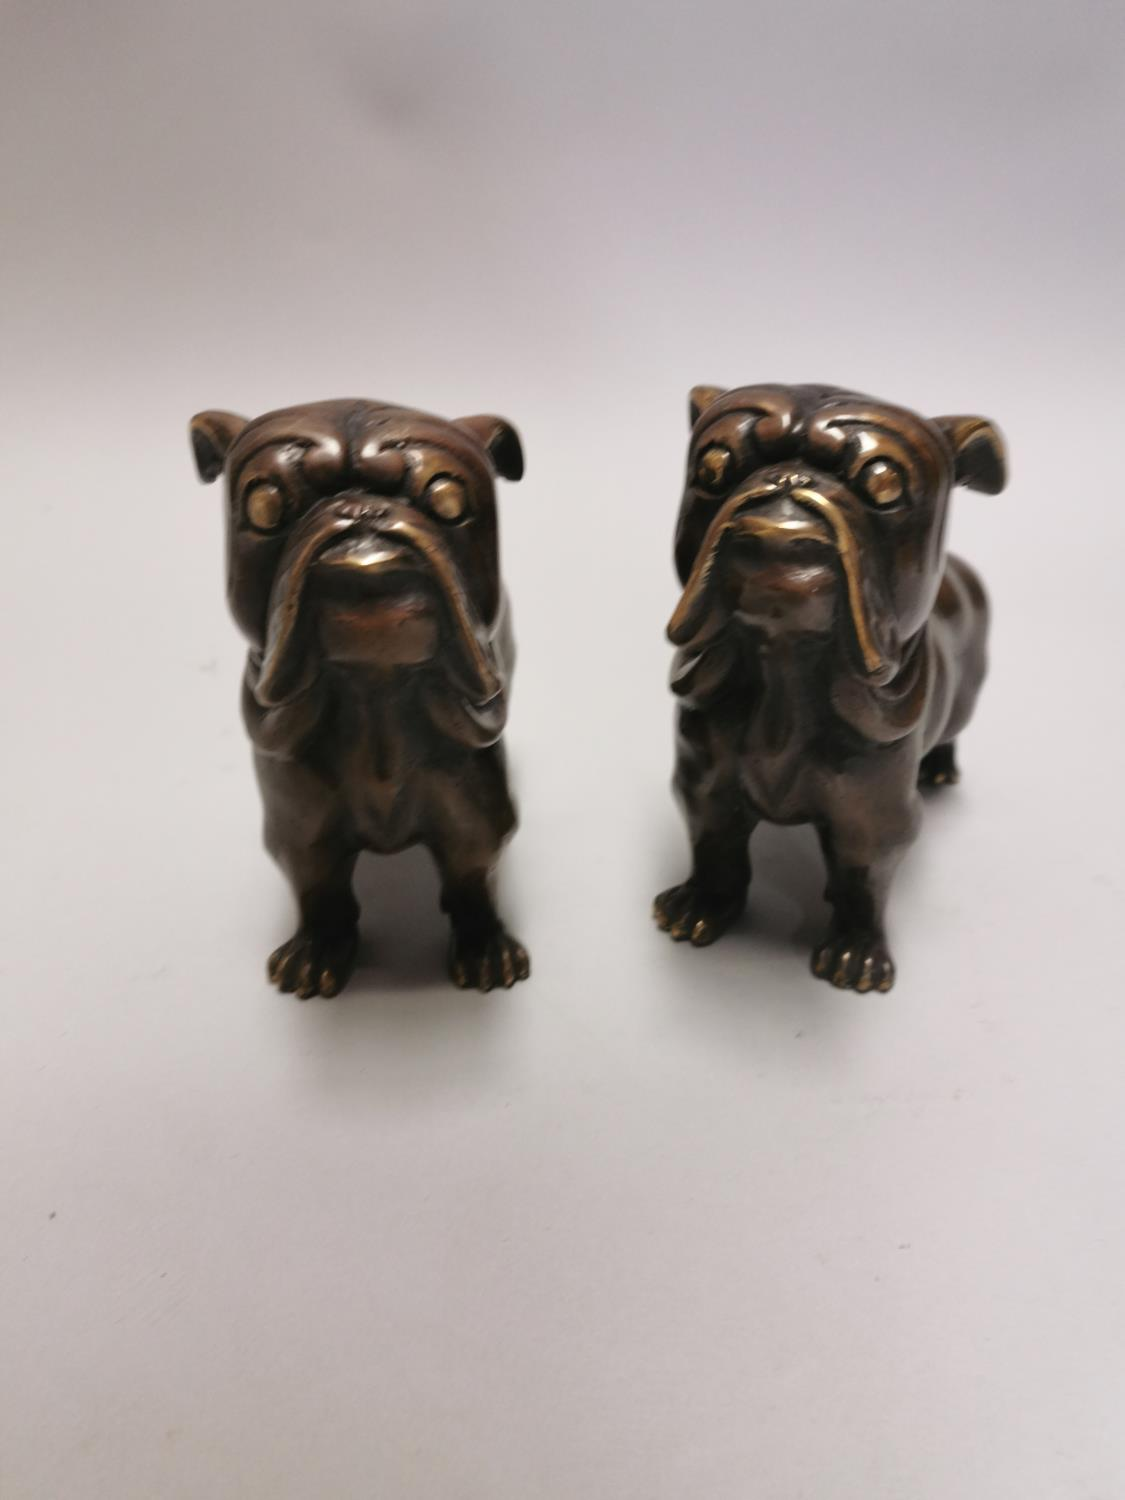 Pair of bronze models of pug dogs - Image 4 of 5